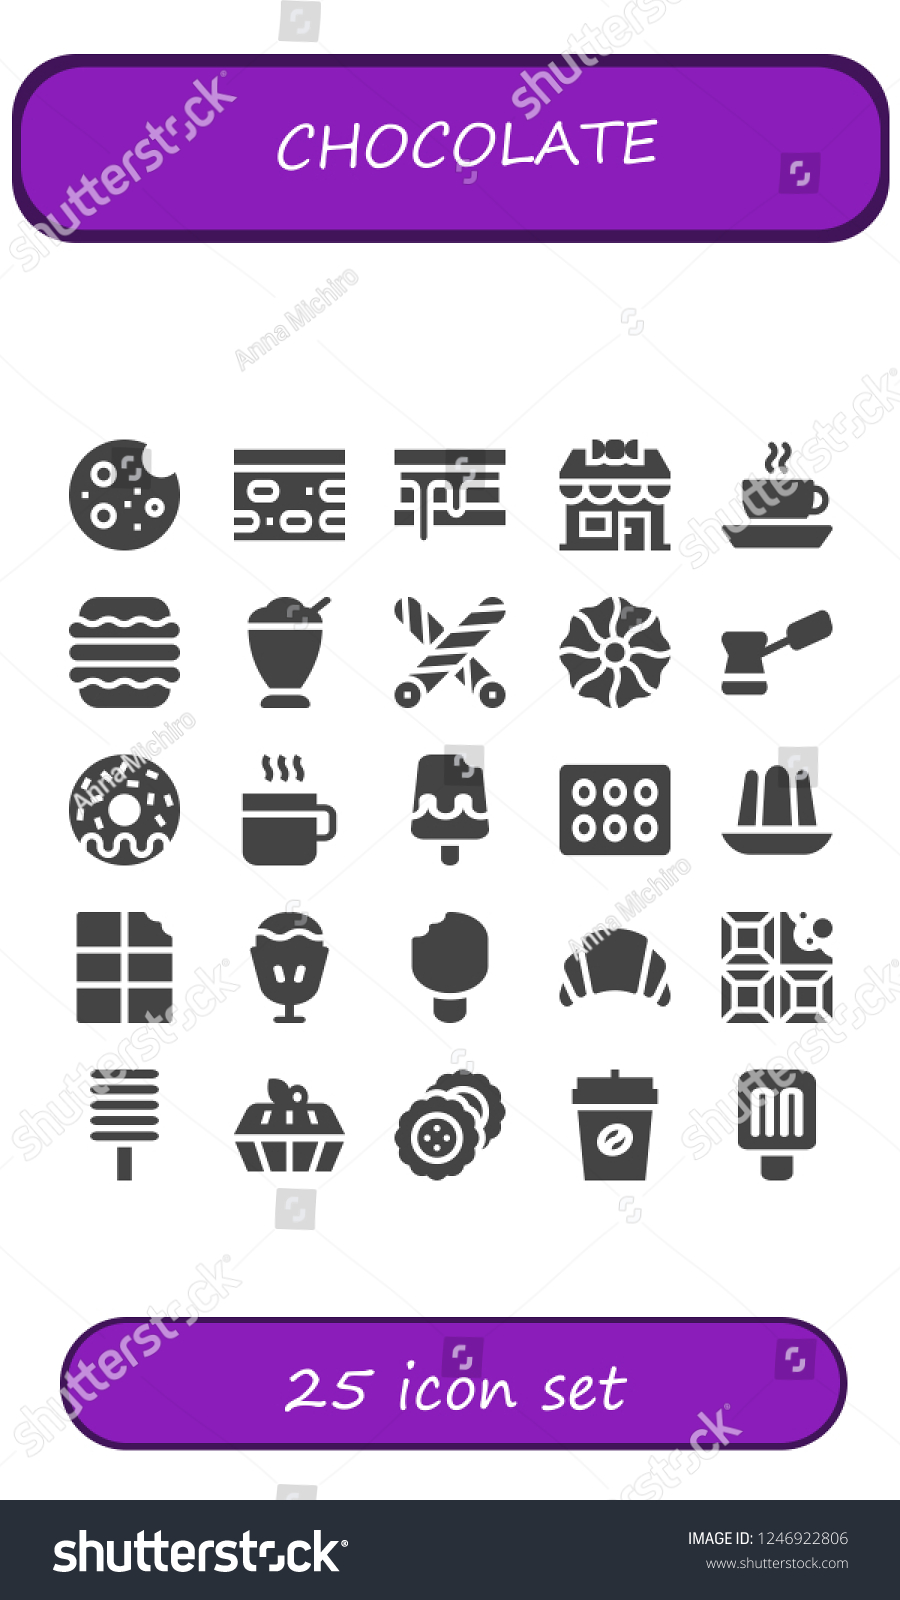 hight resolution of vector icons pack of 25 filled chocolate icons simple modern icons about cookie